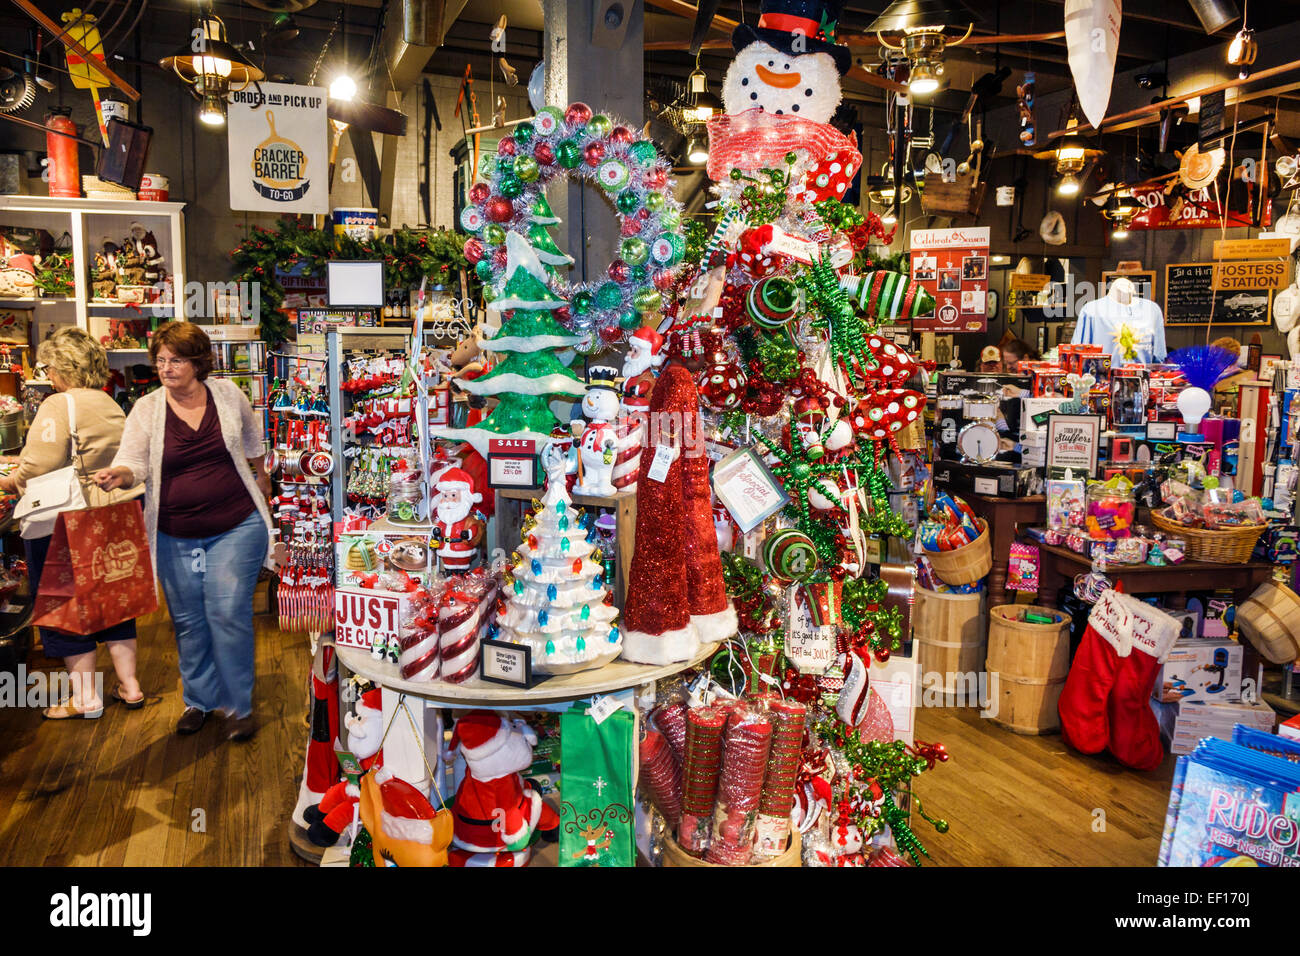 Florida, FL, South, Vero Beach, Cracker Barrel Country Store, shopping shopper shoppers shop shops market markets marketplace buying selling, merchant Stock Photo